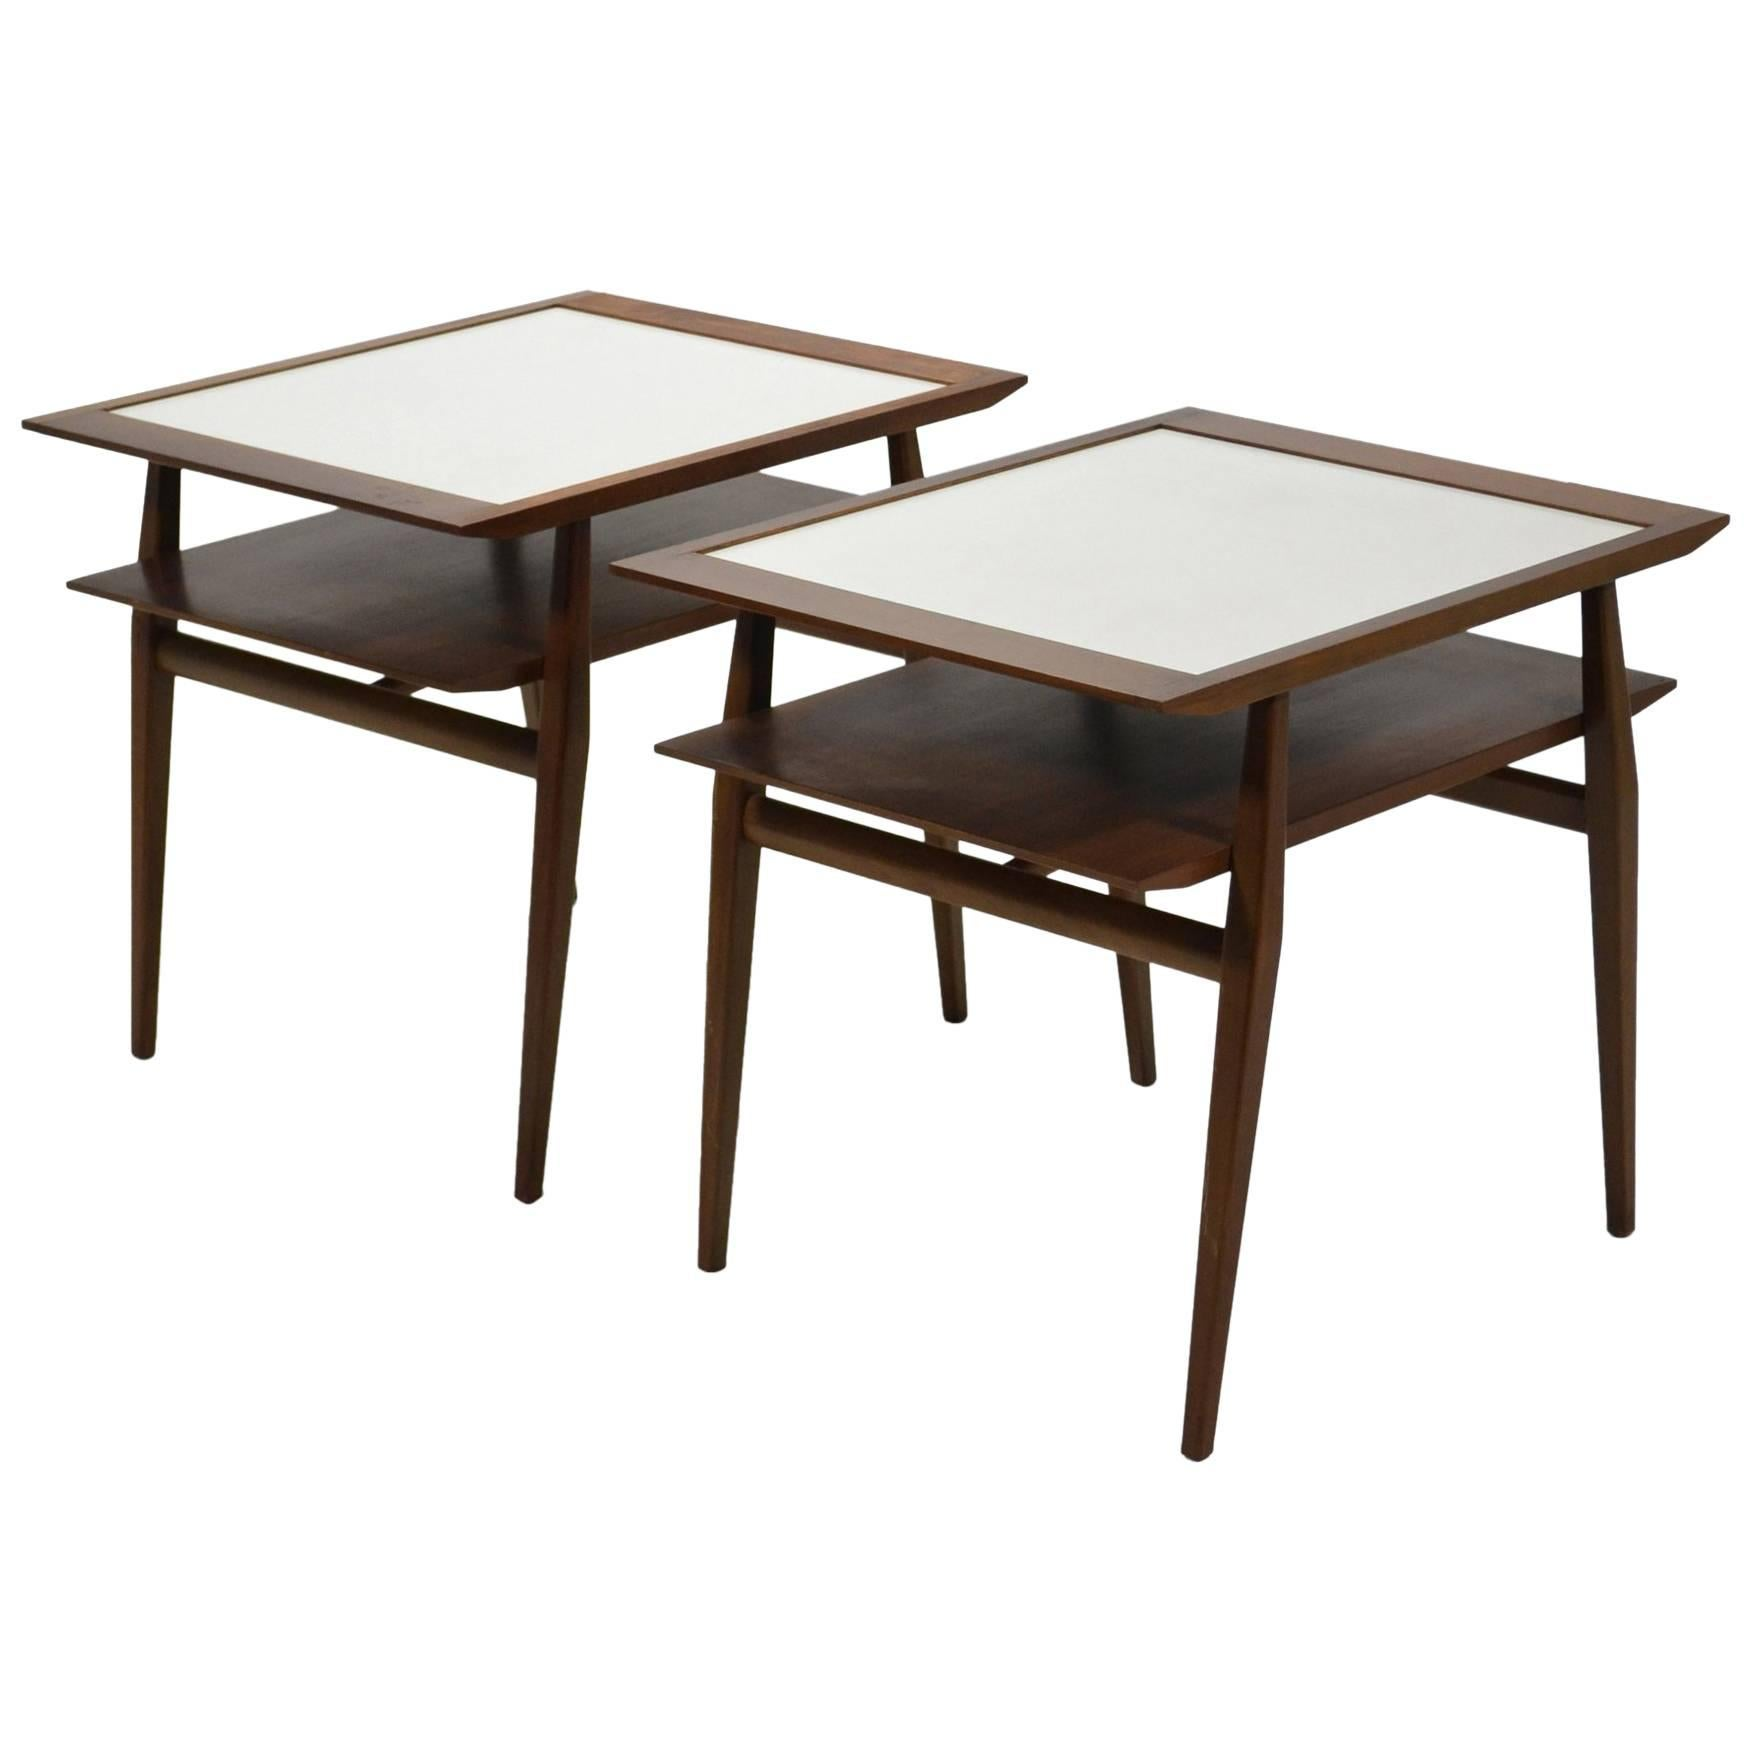 Bertha Schaefer Pair of End Tables by Singer & Sons